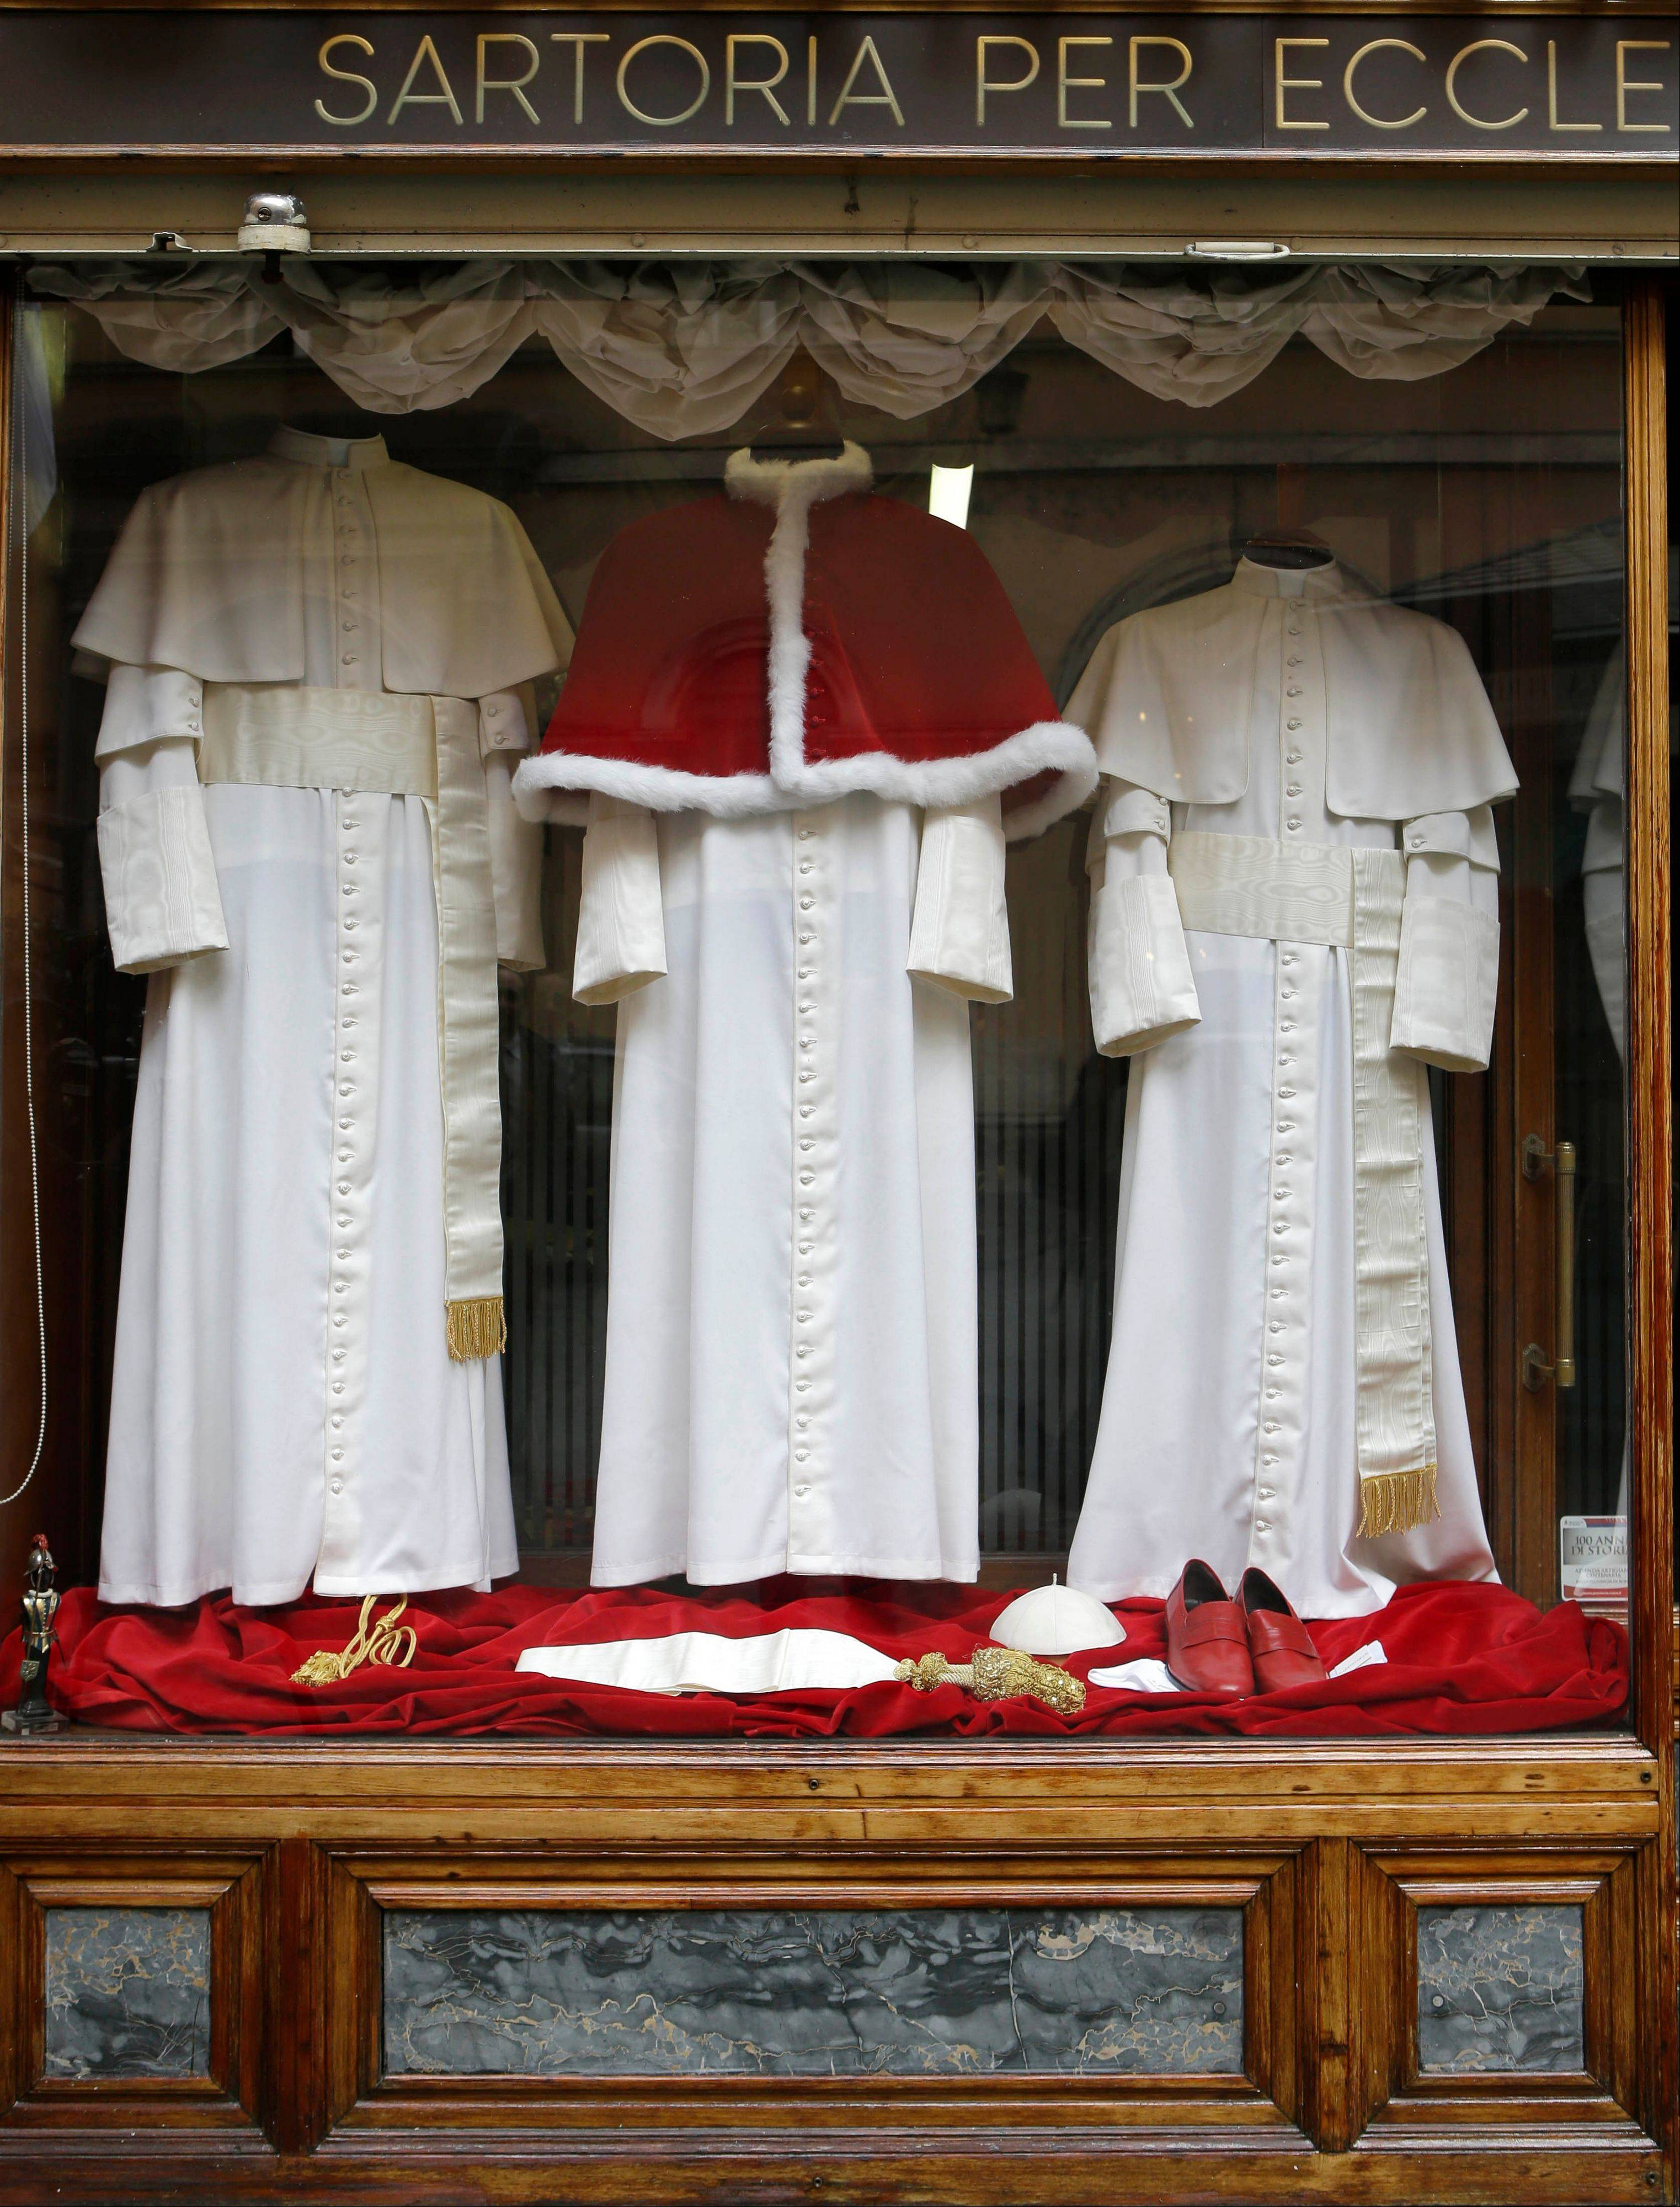 Three sets of papal outfits — small, medium and large sizes — are displayed in the window of the tailoring shop Gammarelli in Rome.